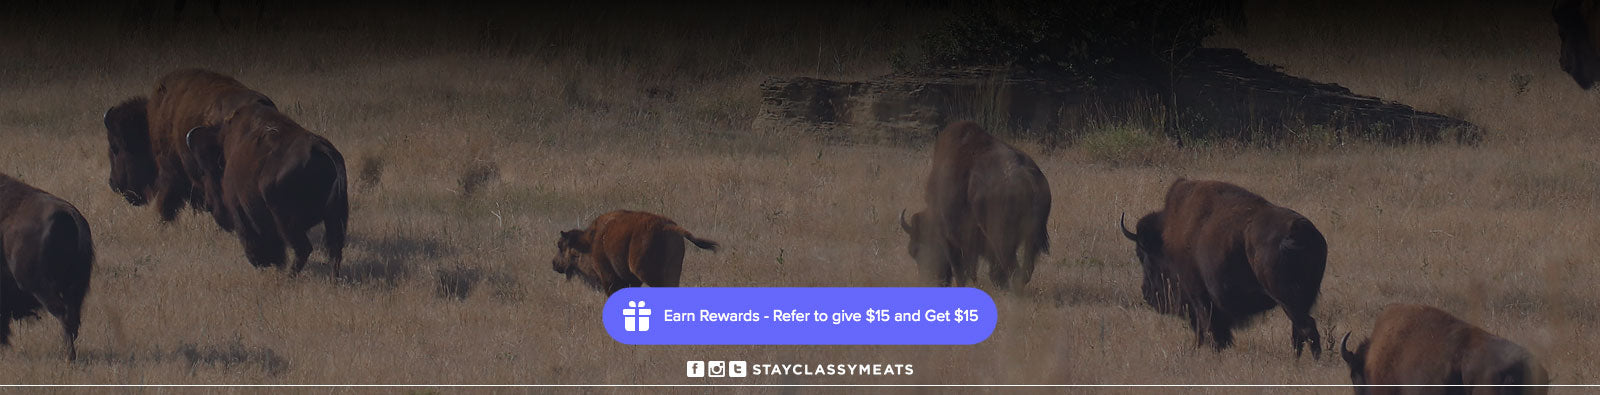 Rewards - How To Redeem Meat Dollars